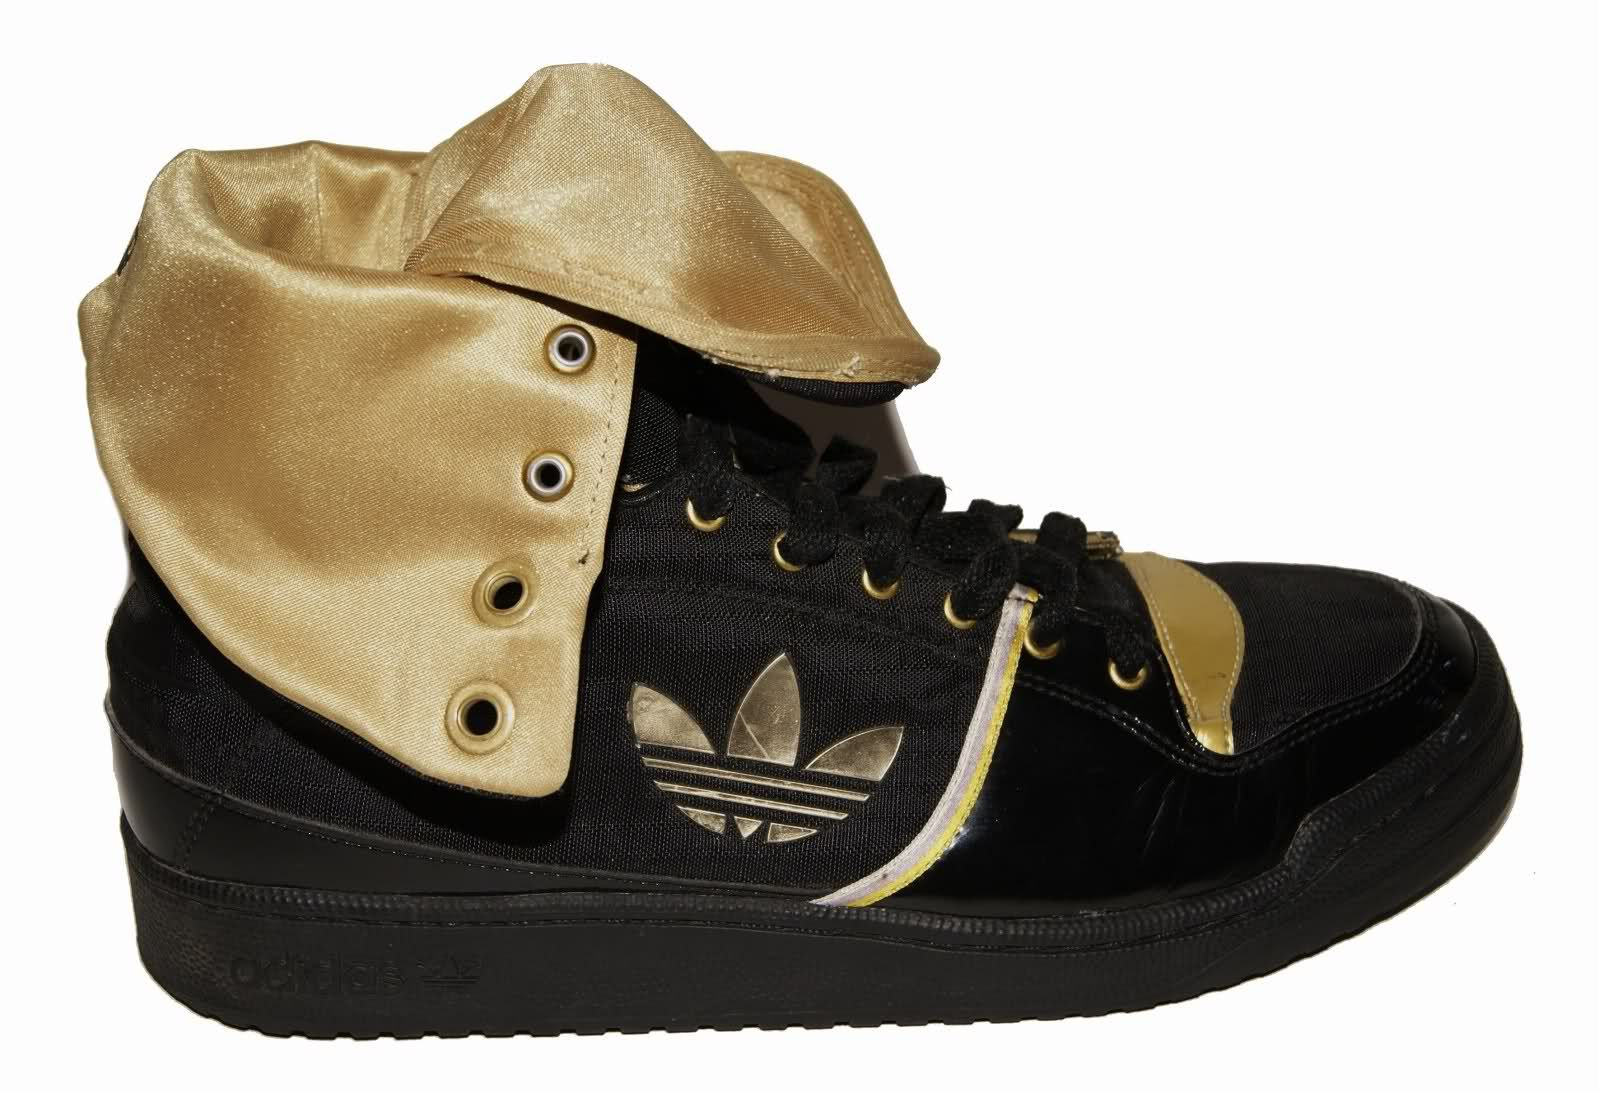 ADIDAS MISSY ELLIOTT RESPECT ME BOOTS   gold is the new black ... ca03ec8c65